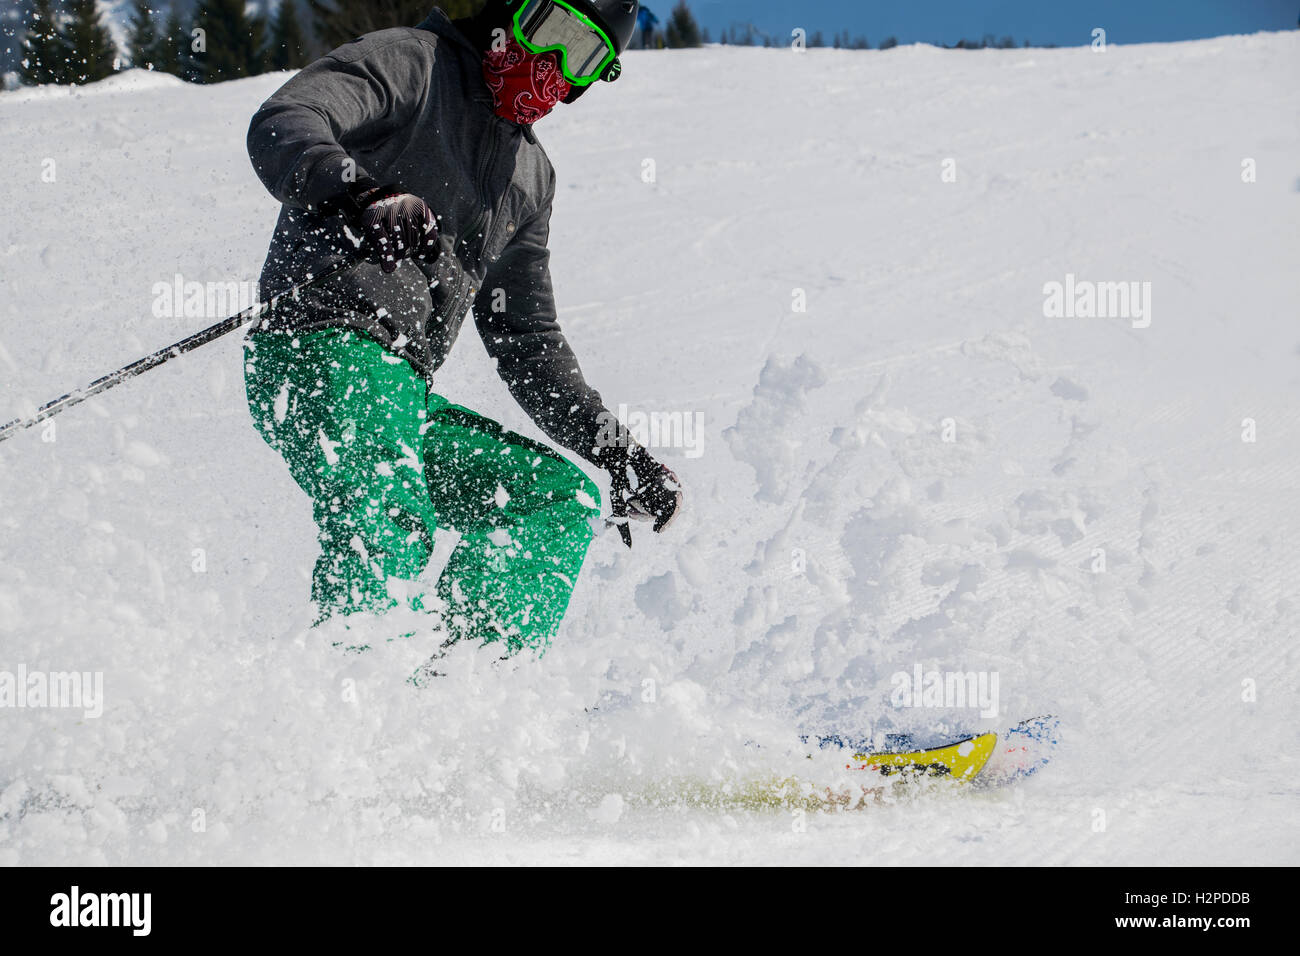 skier produces a snow cloud when stopping downhill trip - Stock Image